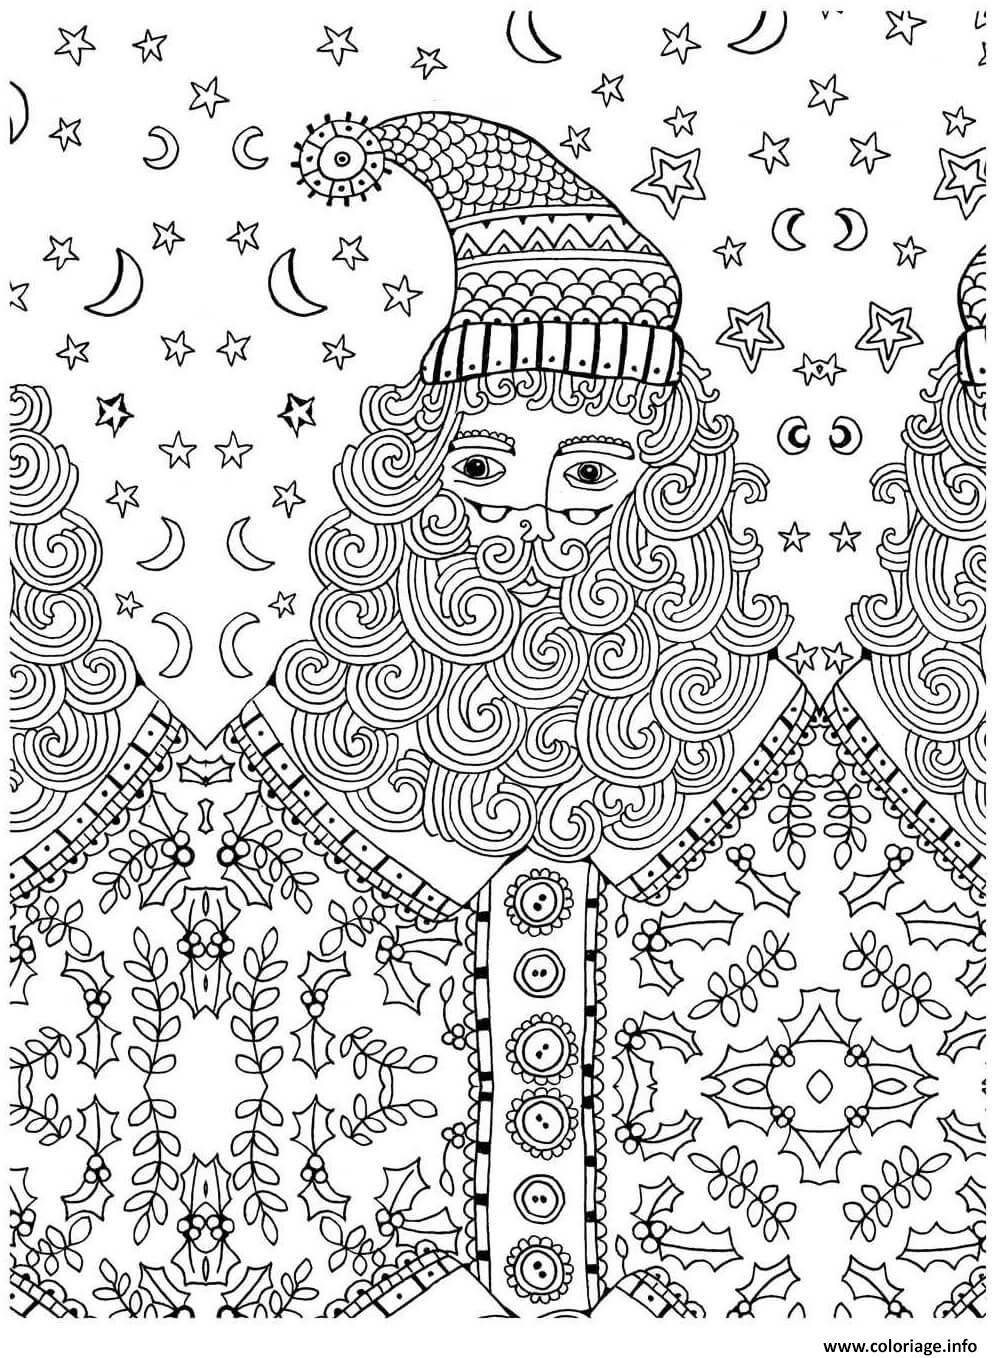 Coloriage anti stress noel - Coloriage anti stress gratuit ...